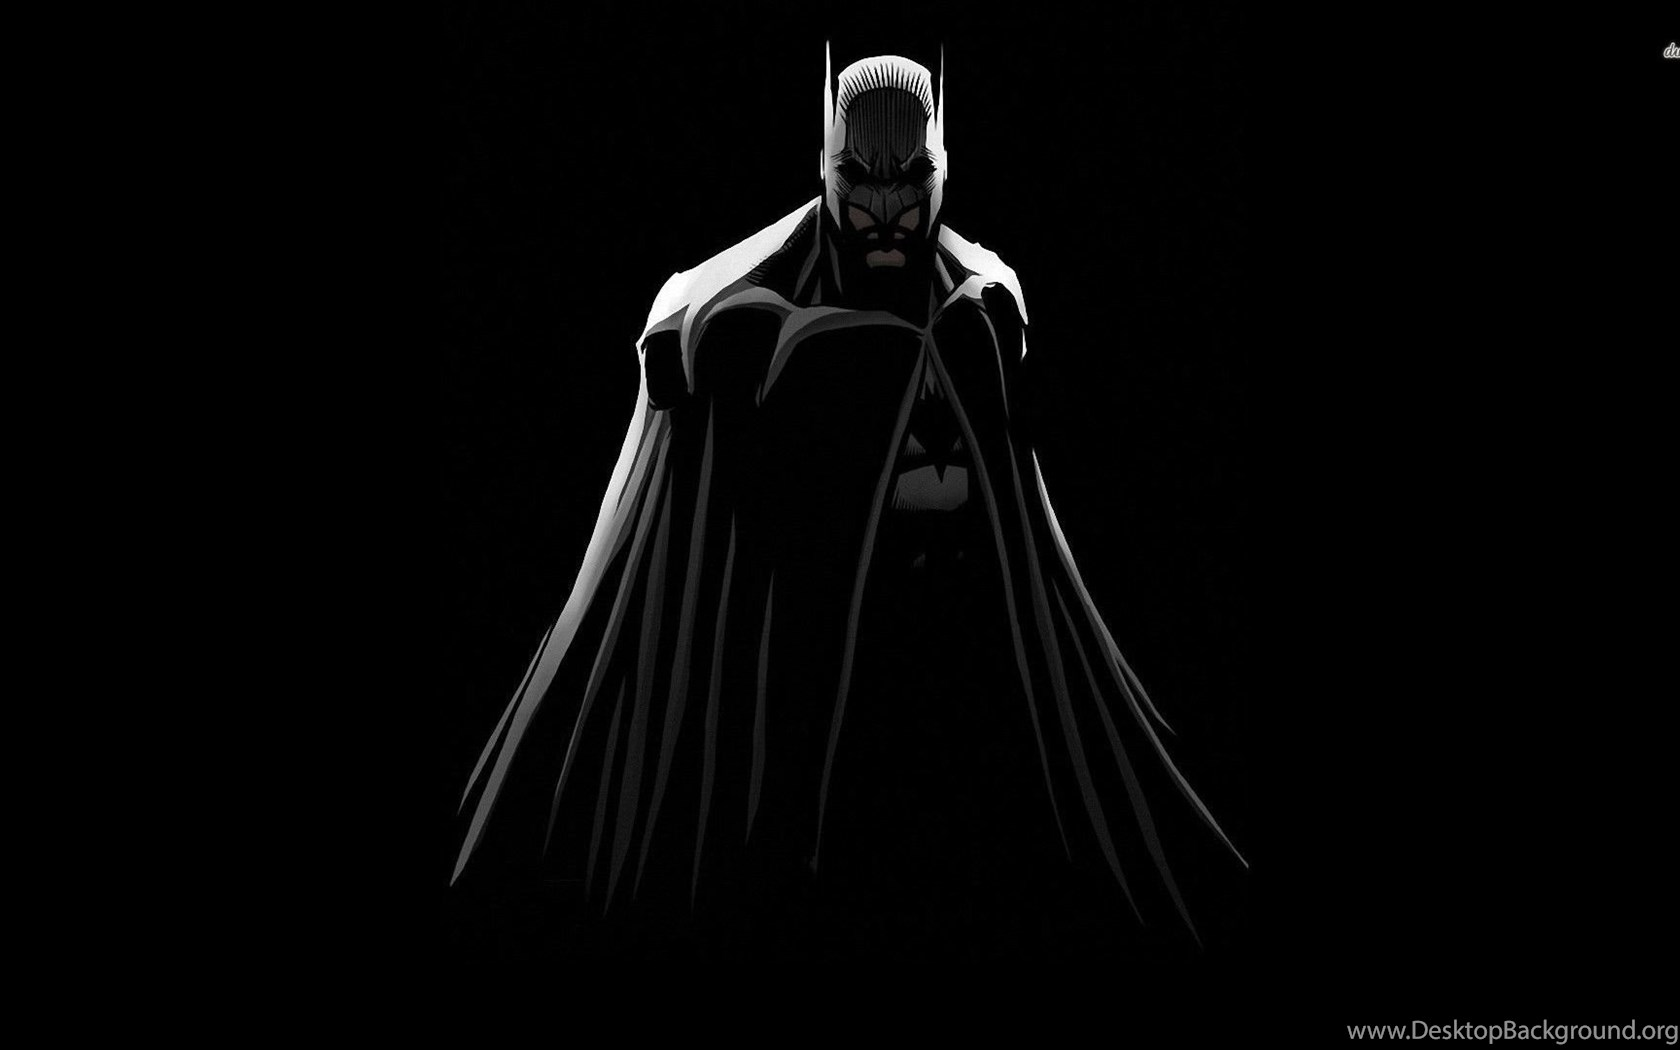 Finders Keepers [Yara Flor] 797046_43935-batman-in-the-darkness-in-the-dark-knight-1920x1080-movie_1920x1080_h